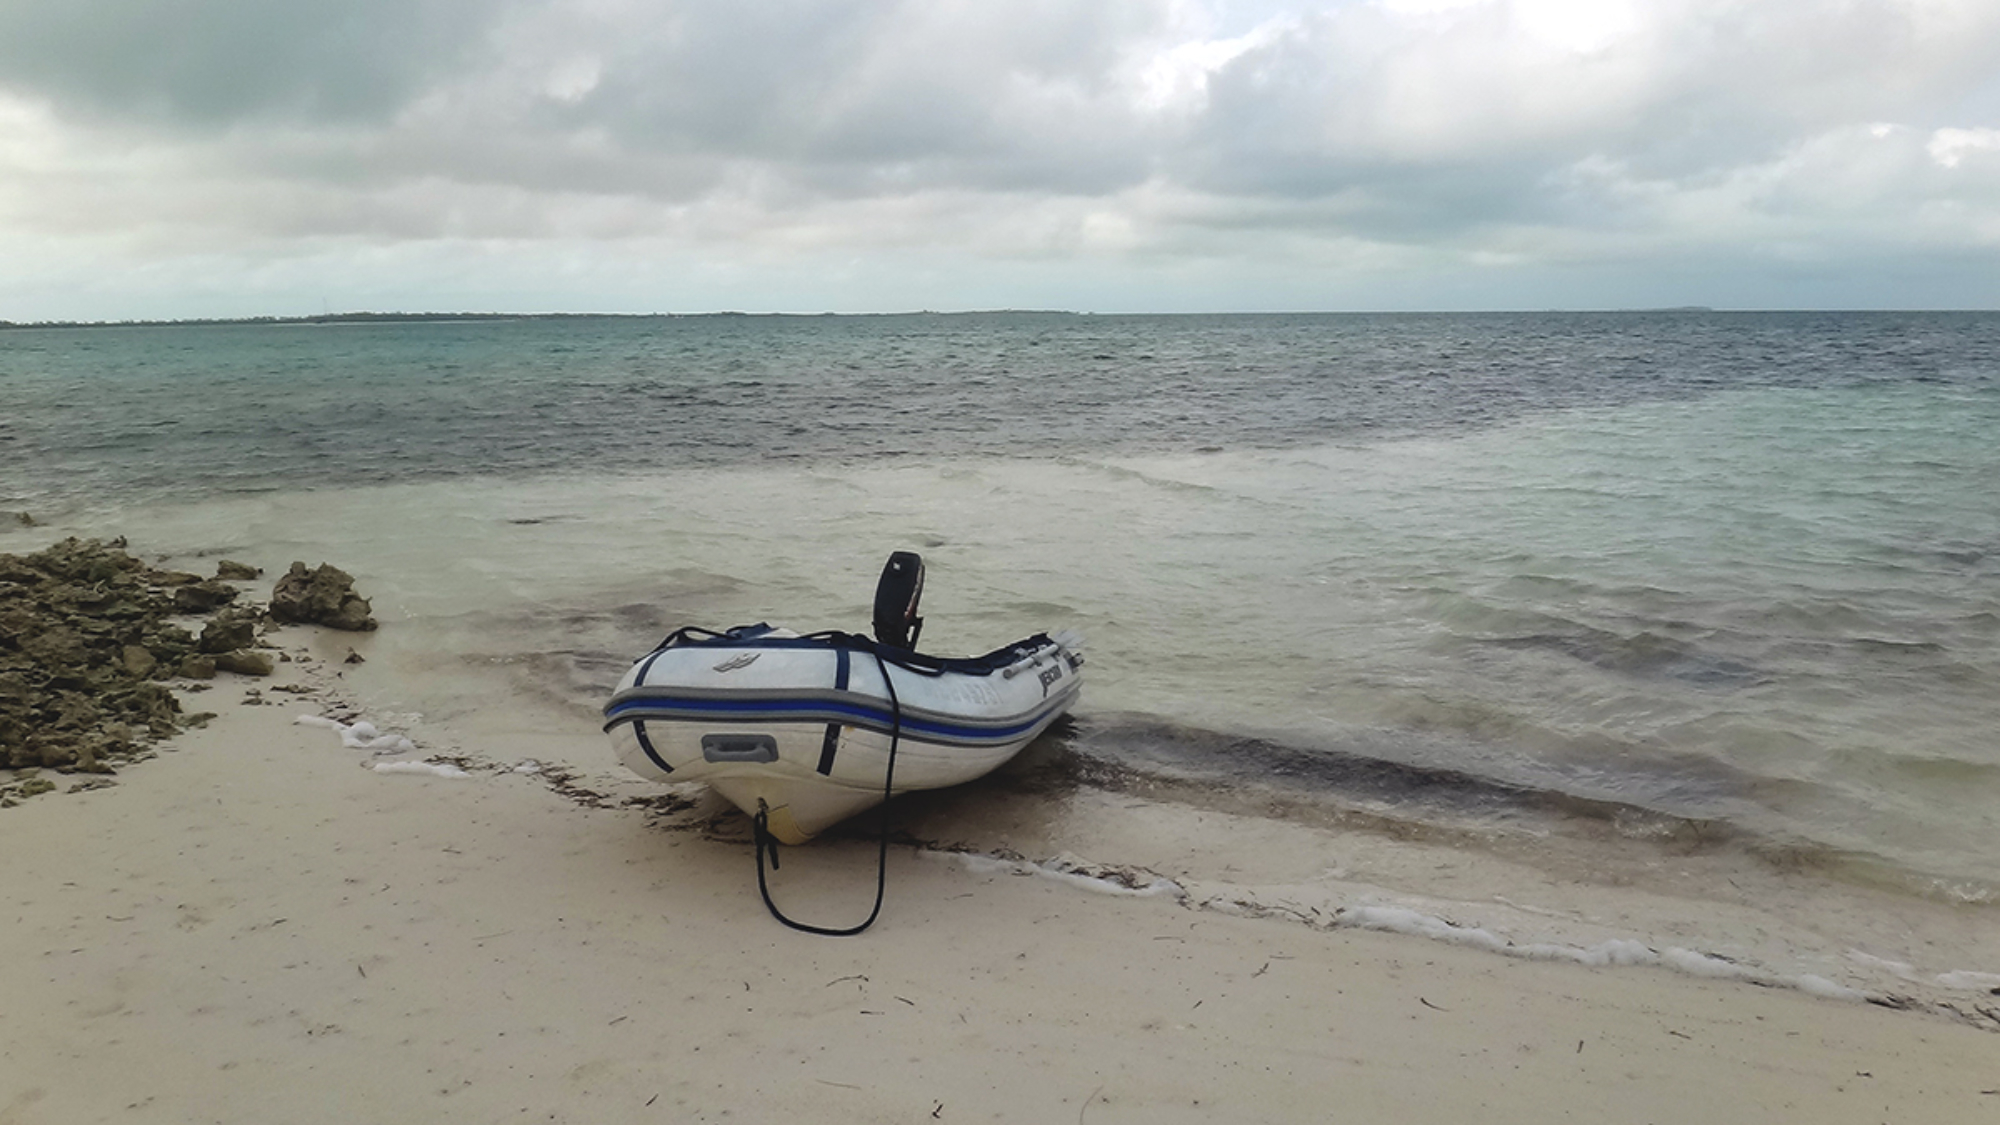 dinghy on shore